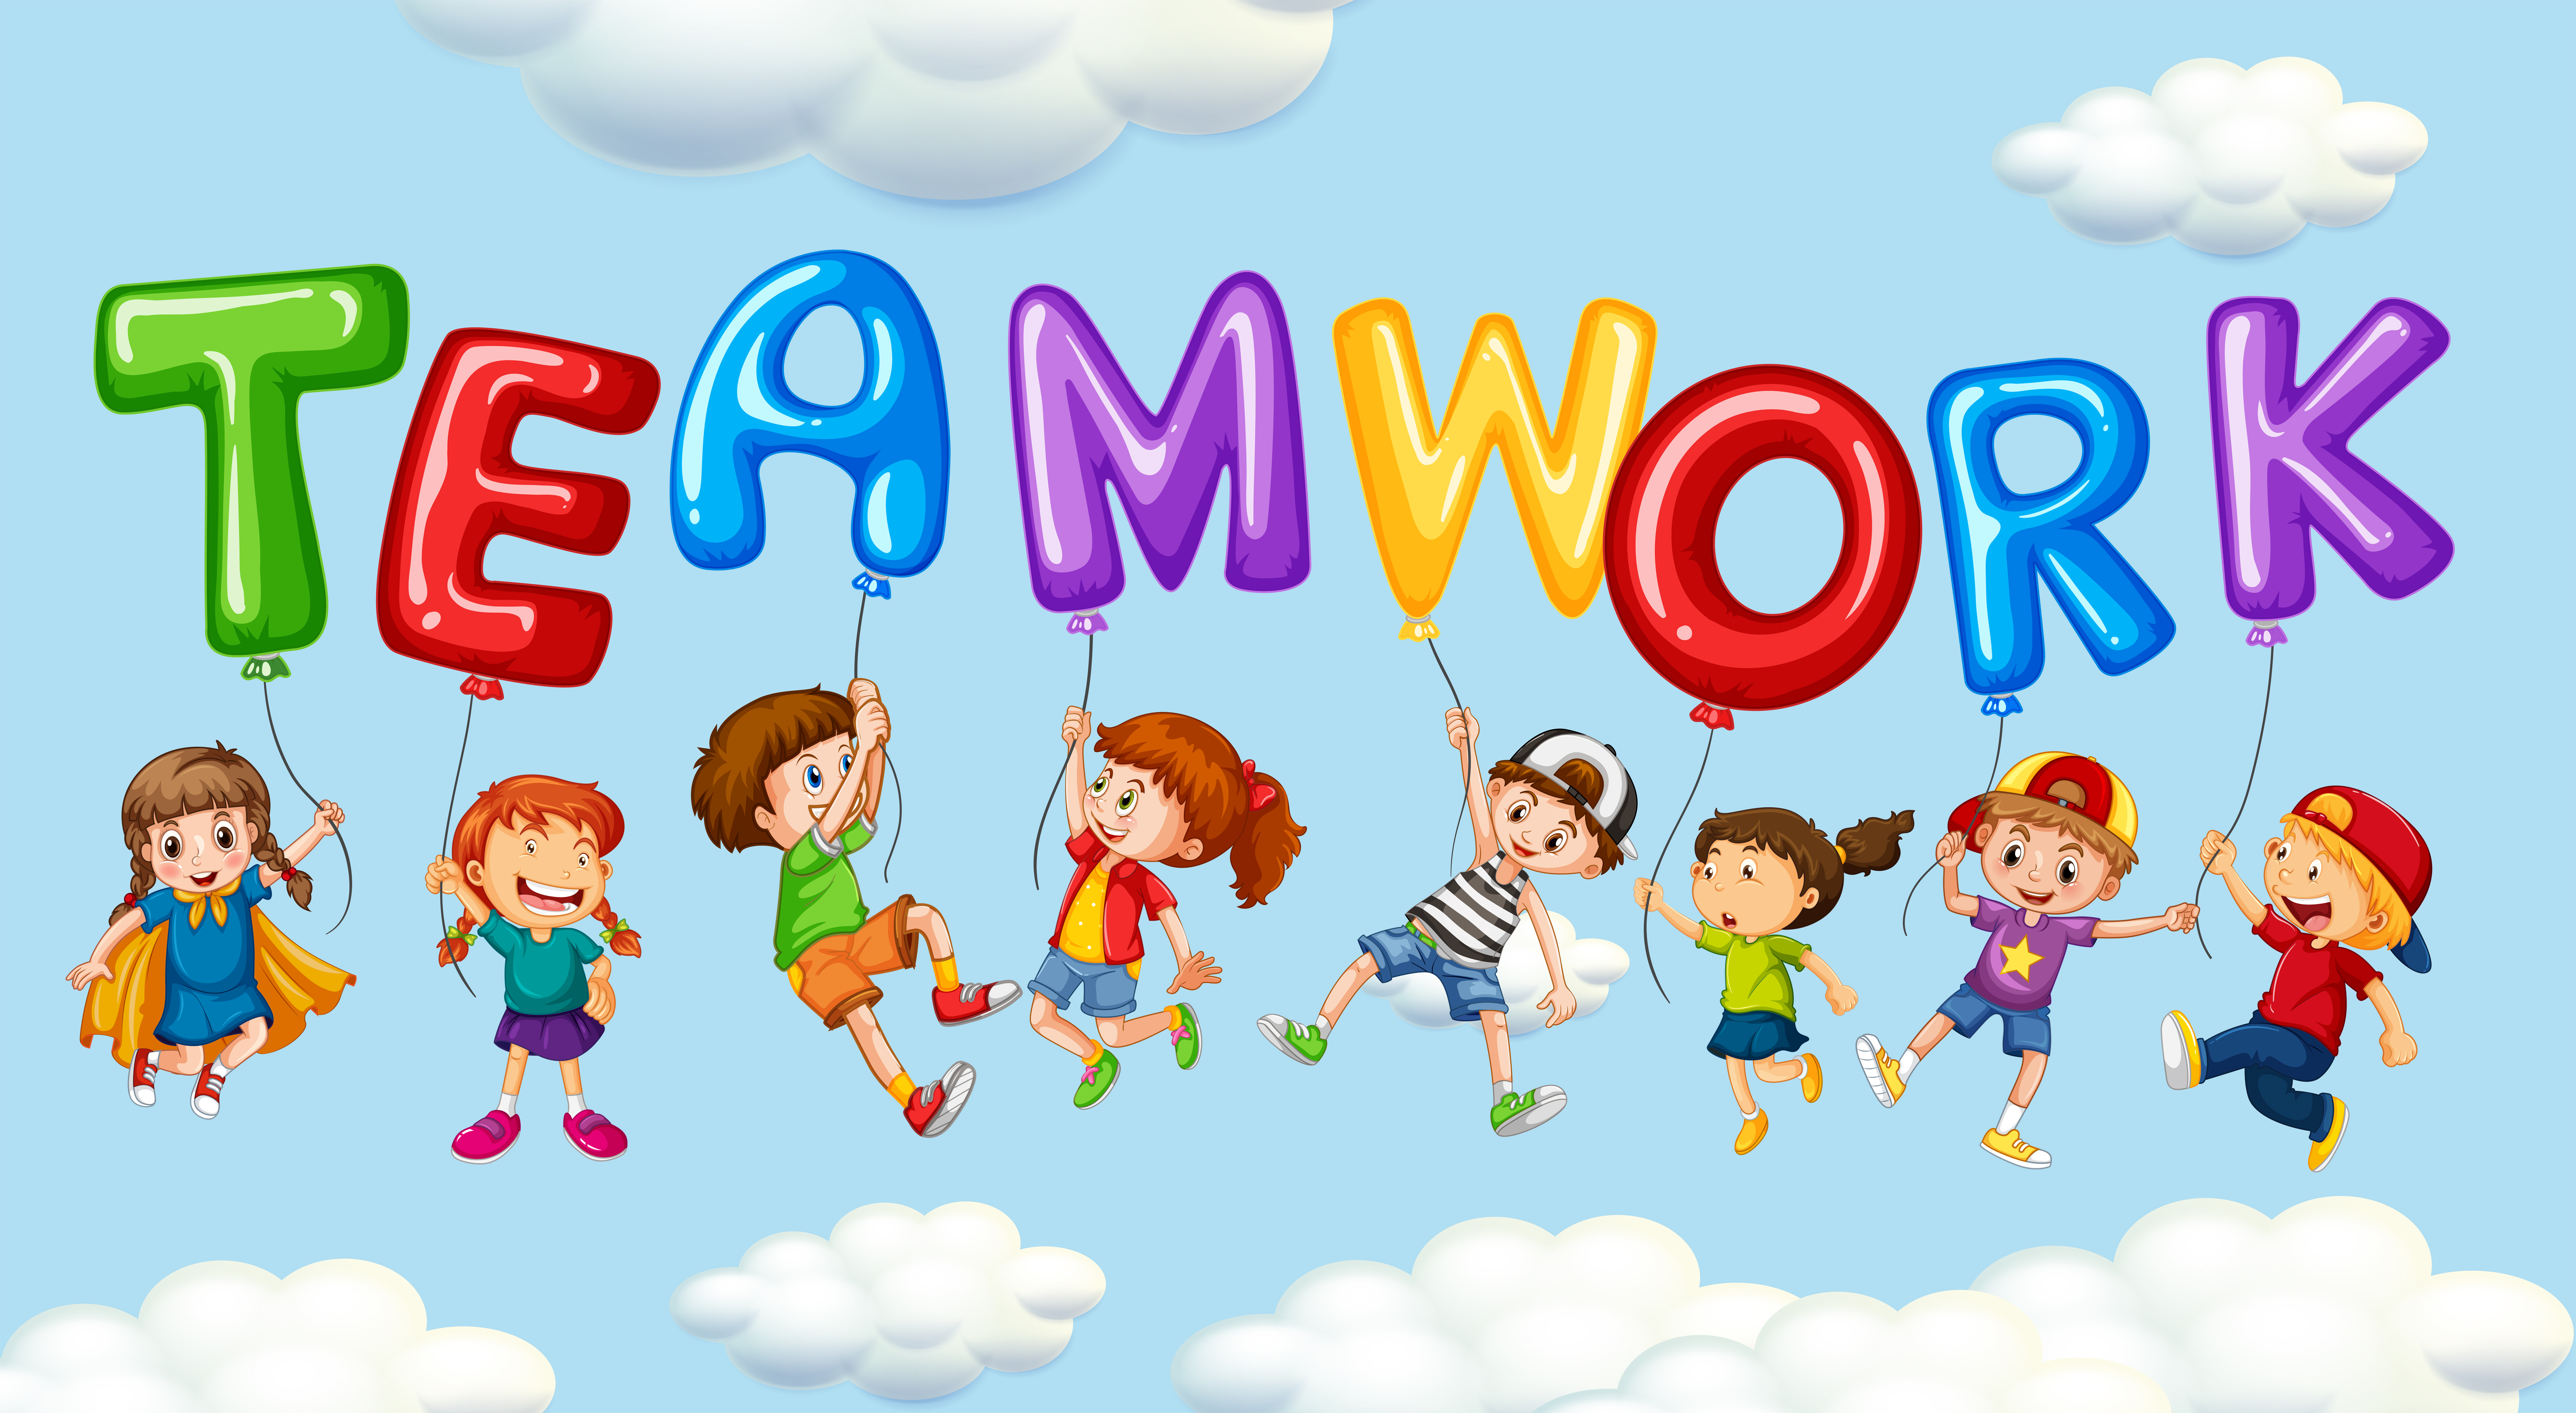 Kids and balloons for word teamwork - Download Free ...